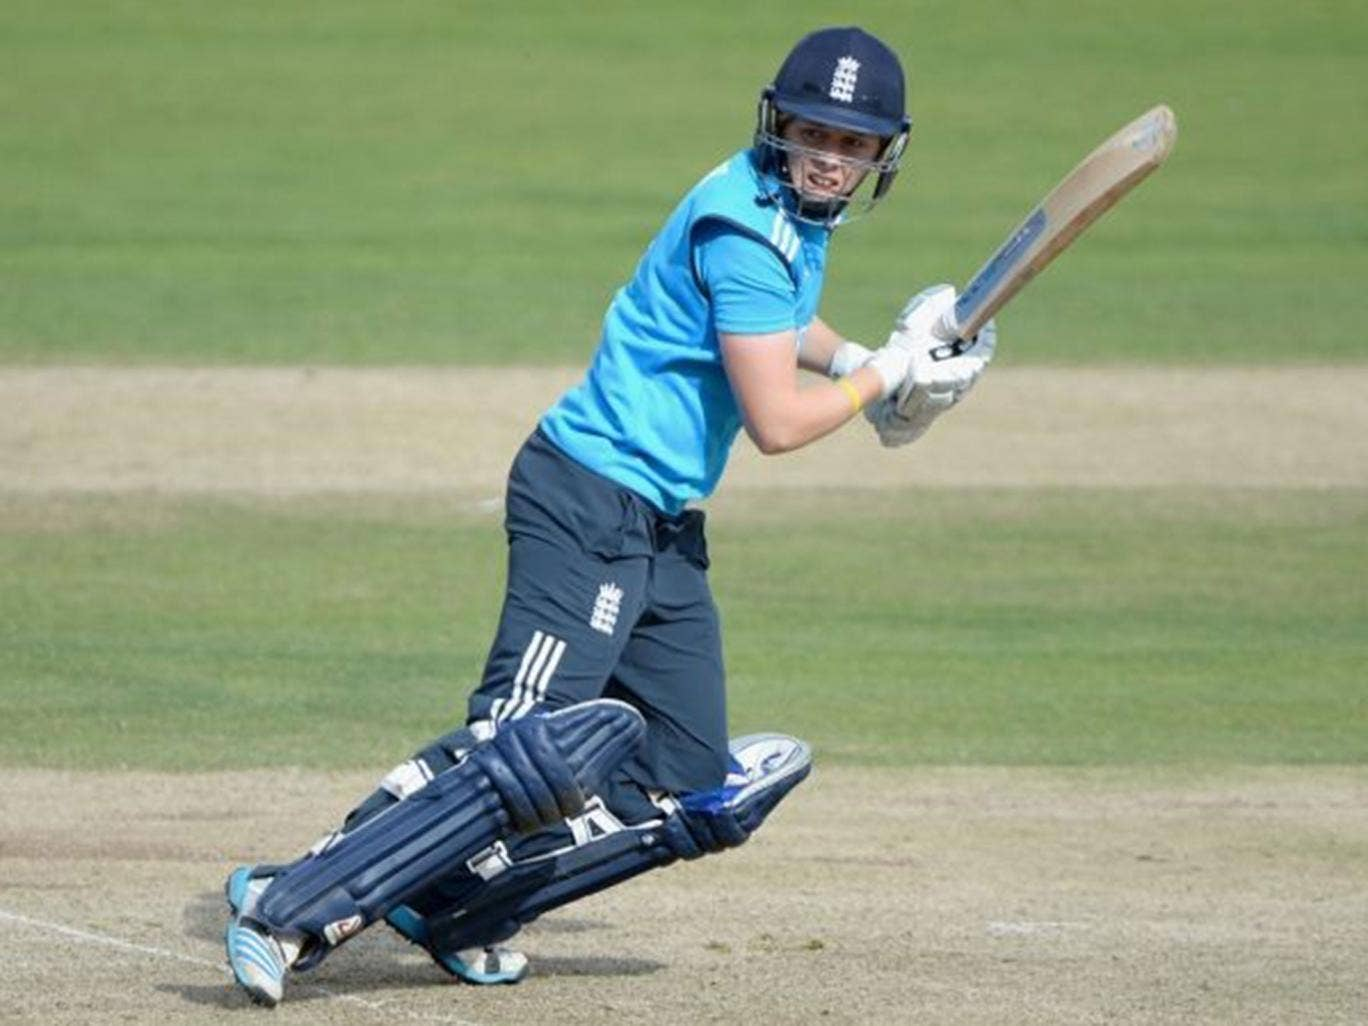 Heather Knight bats during the 1st  Royal London ODI between England and India